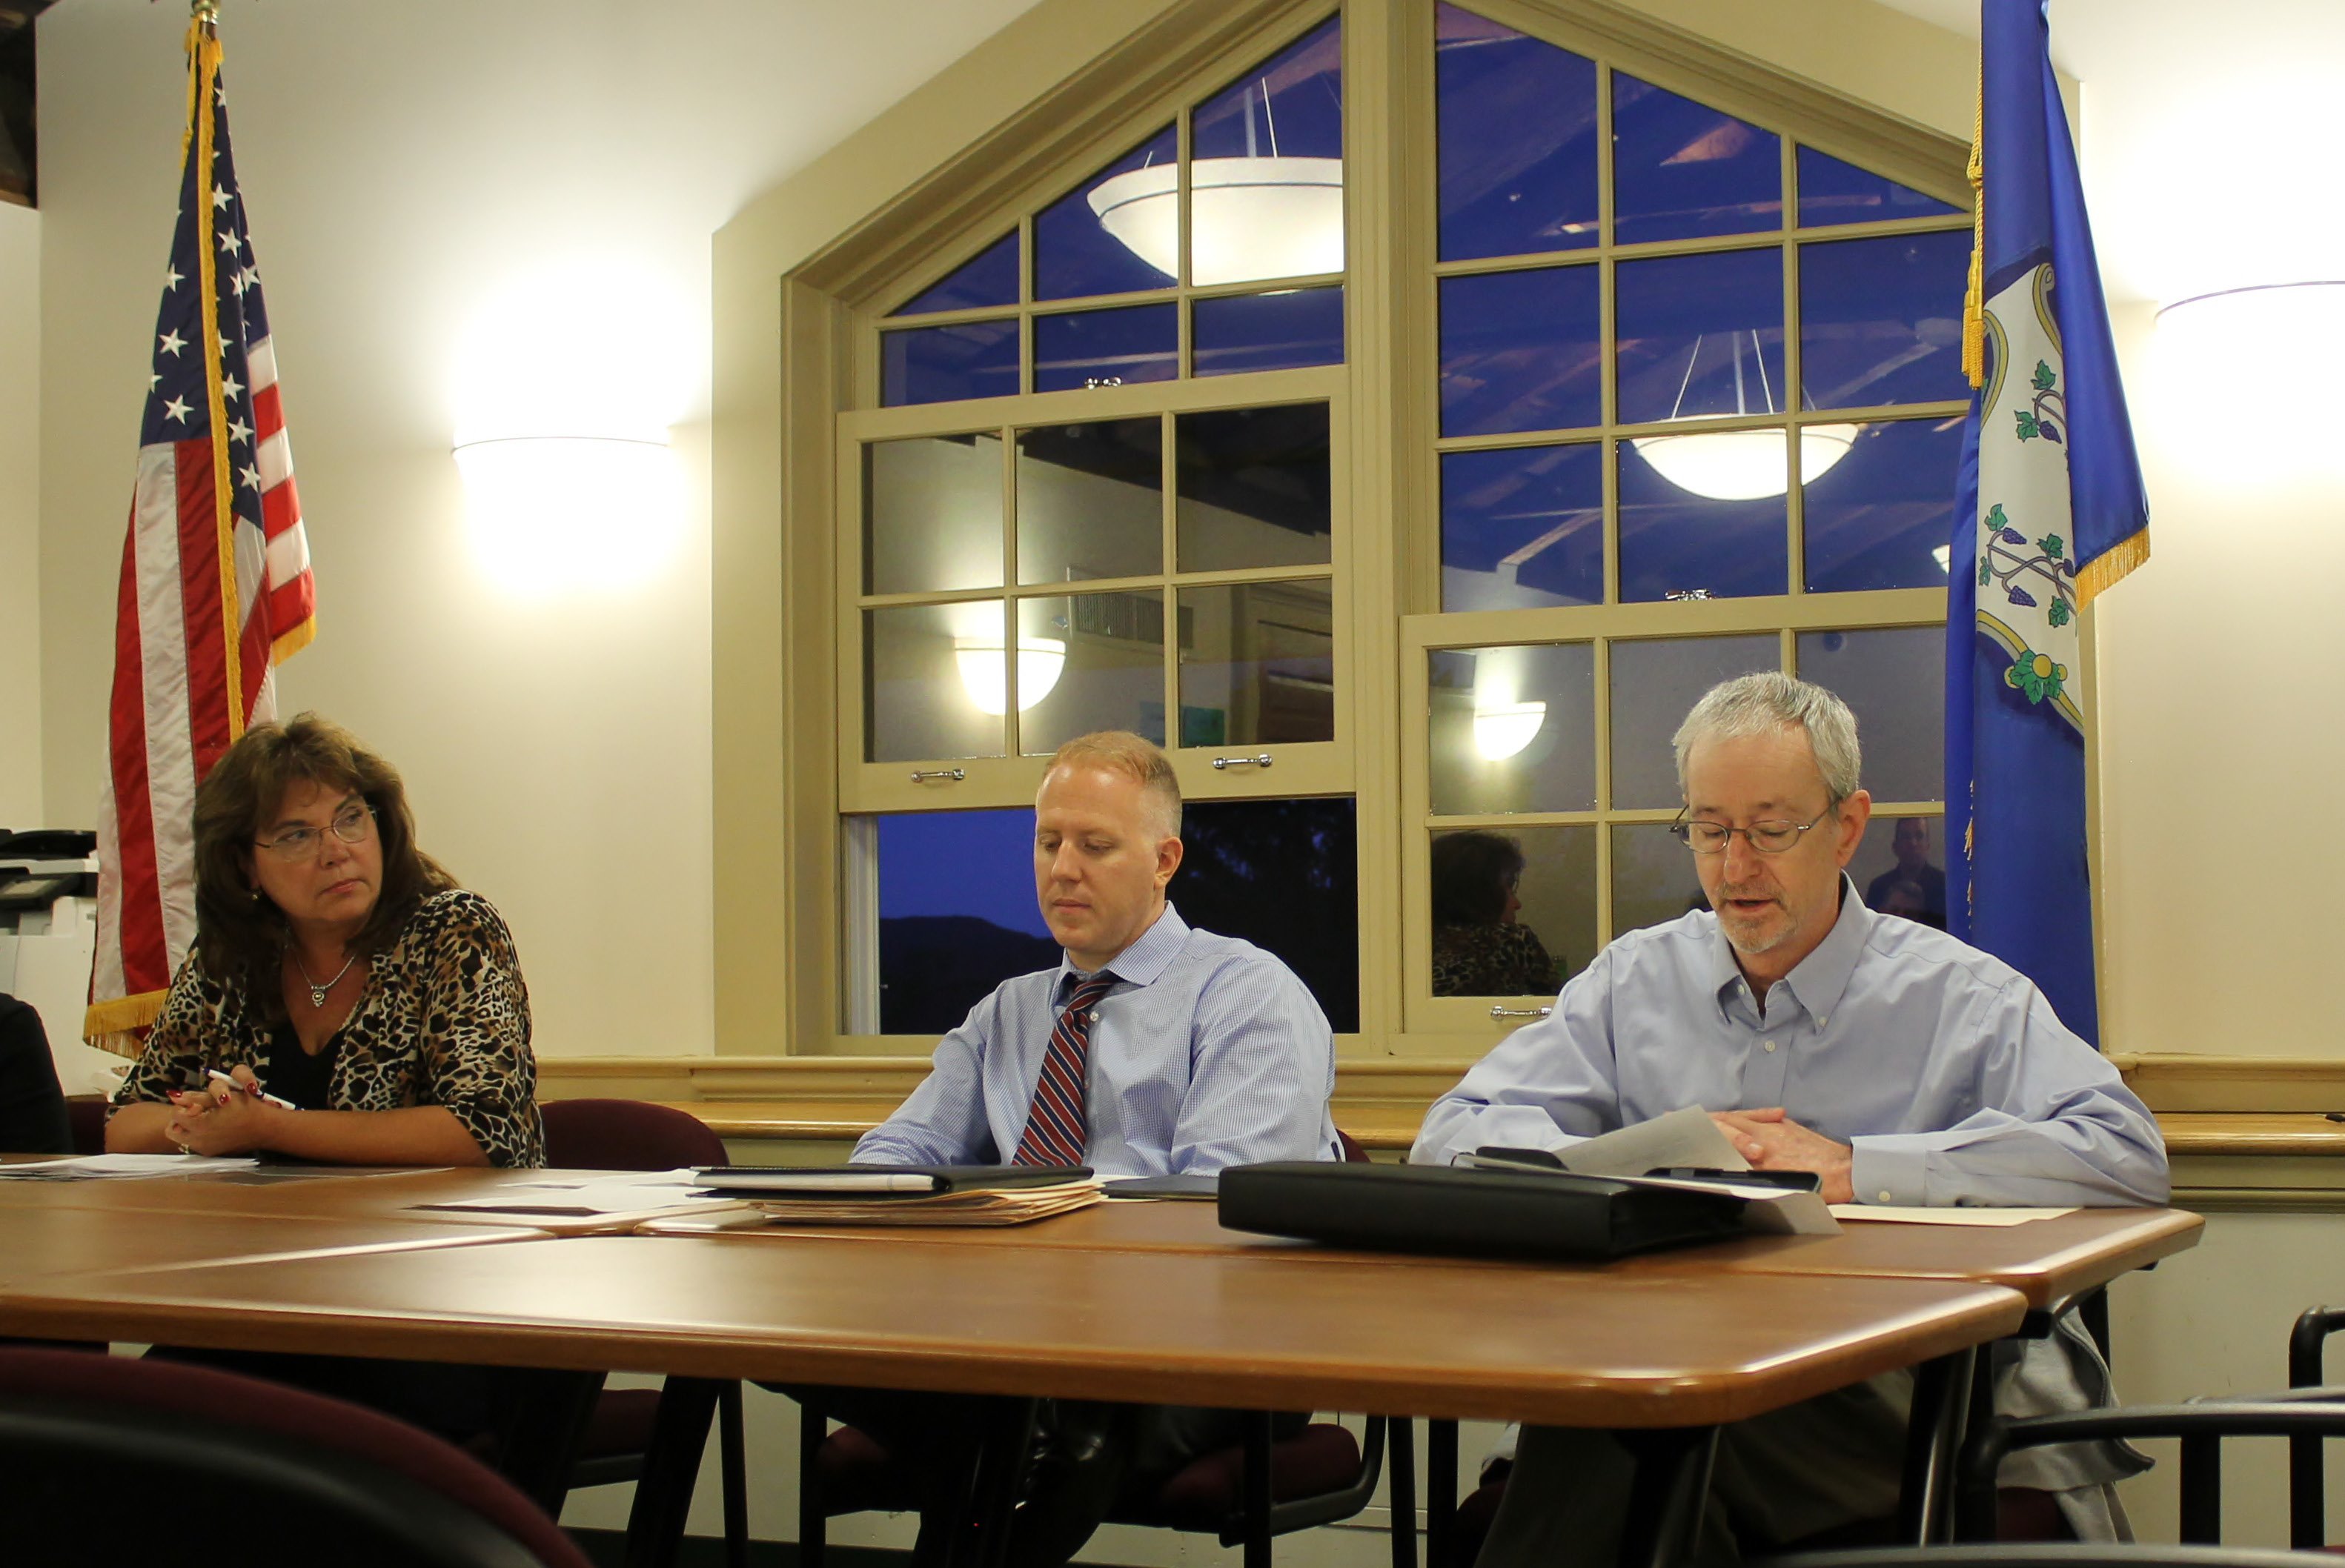 Selectman Steve Levy, right, reads his letter of resignation at Durham's Board of Selectmen's meeting on Monday, Sept. 11. Levy's resignation will be effective Monday, Oct. 2. | Mark Dionne, Town Times